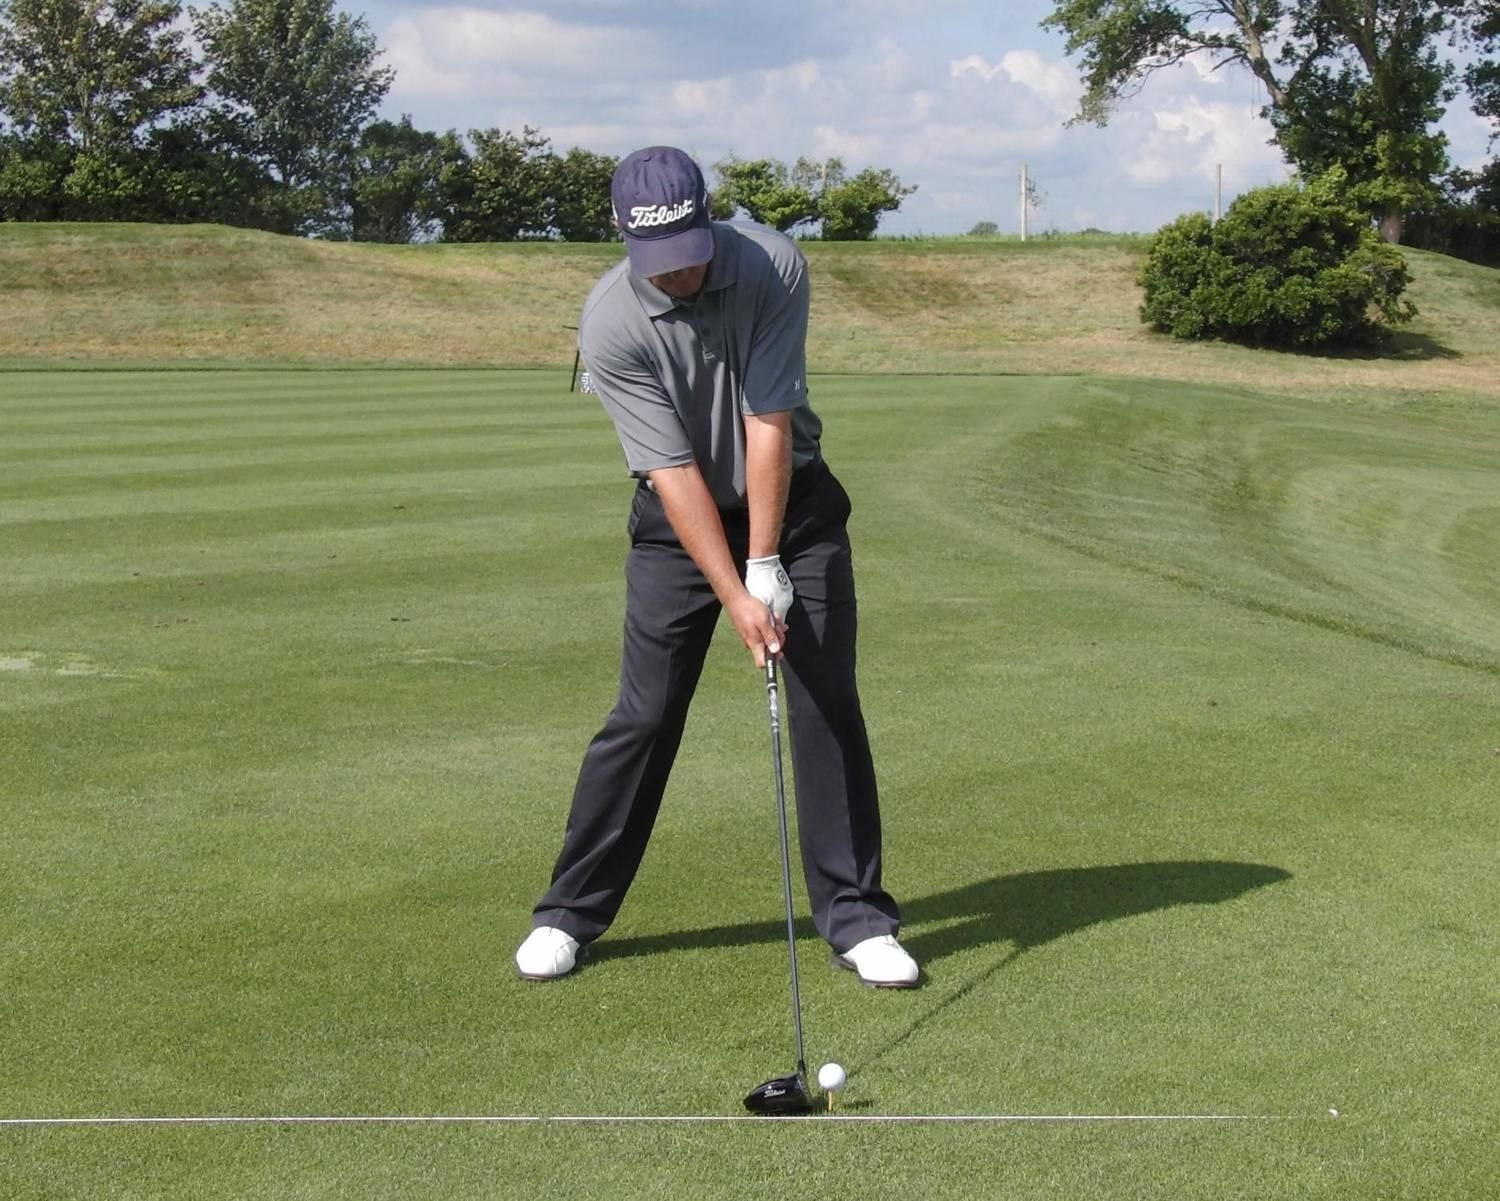 Hitting up or down heres how to set up golf tips golf